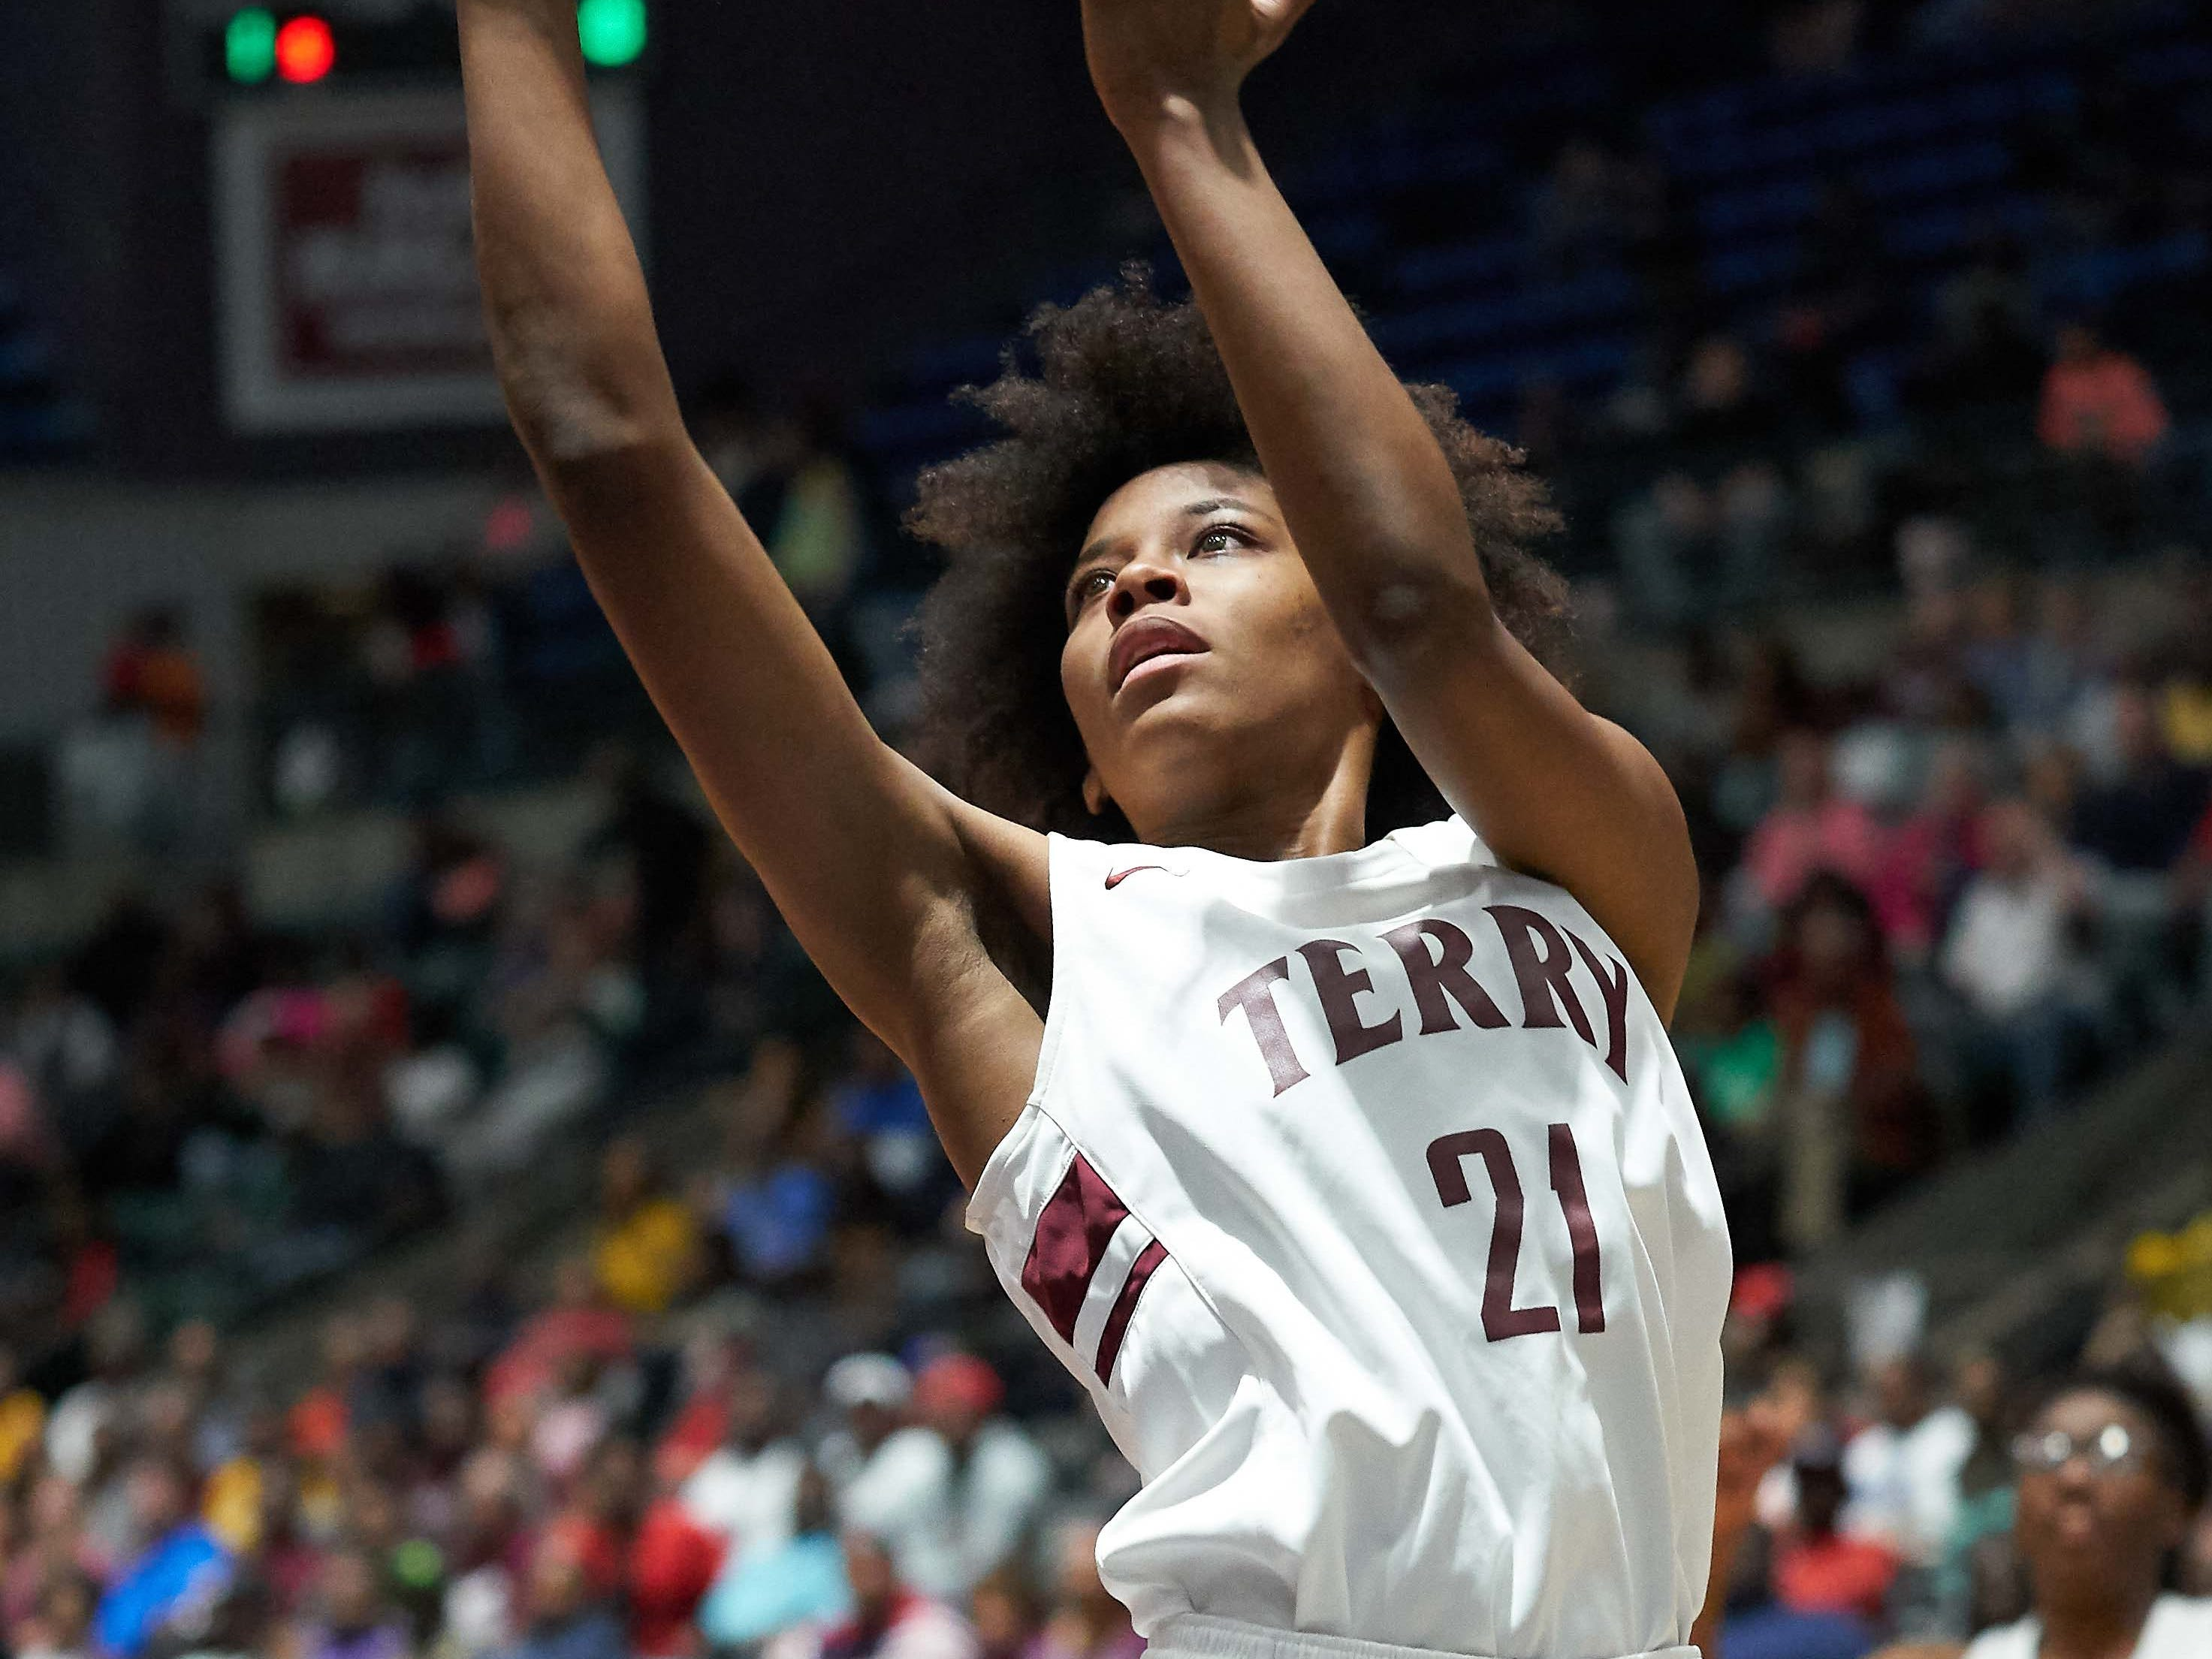 Terry's Ayani Cockrell (21) shoots against Pearl during the MHSAA 6A Girls Basketball Championship Finals held at the Mississippi Coliseum in Jackson, MS, Saturday March 9th, 2019.(Bob Smith)